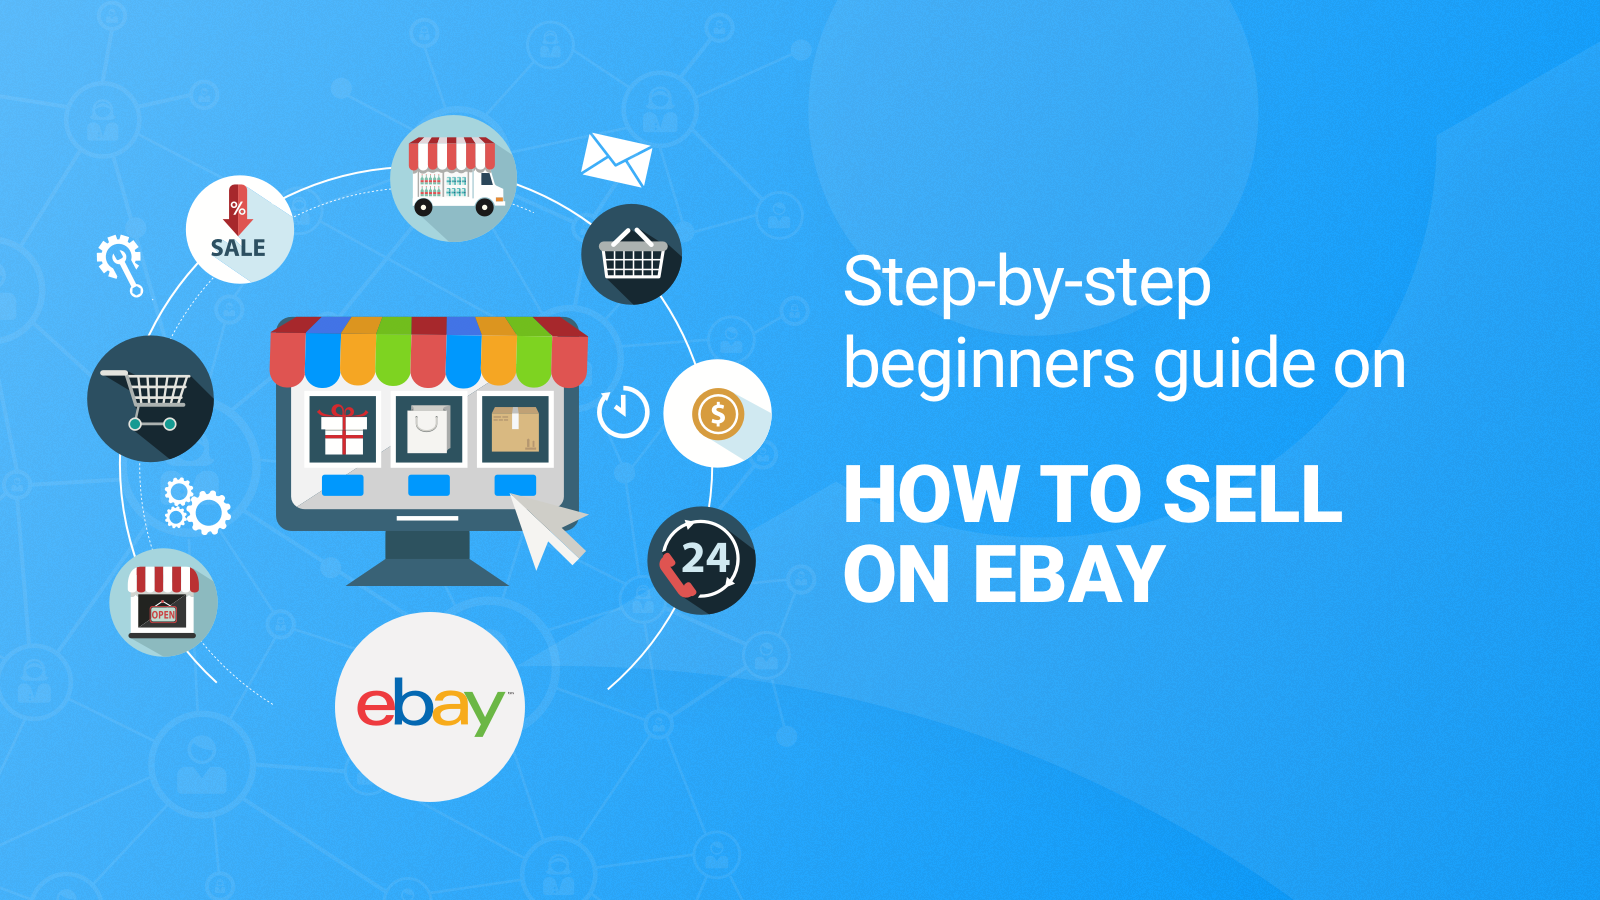 Step-by-step beginners guide on how to sell on eBay | NetHunt CRM